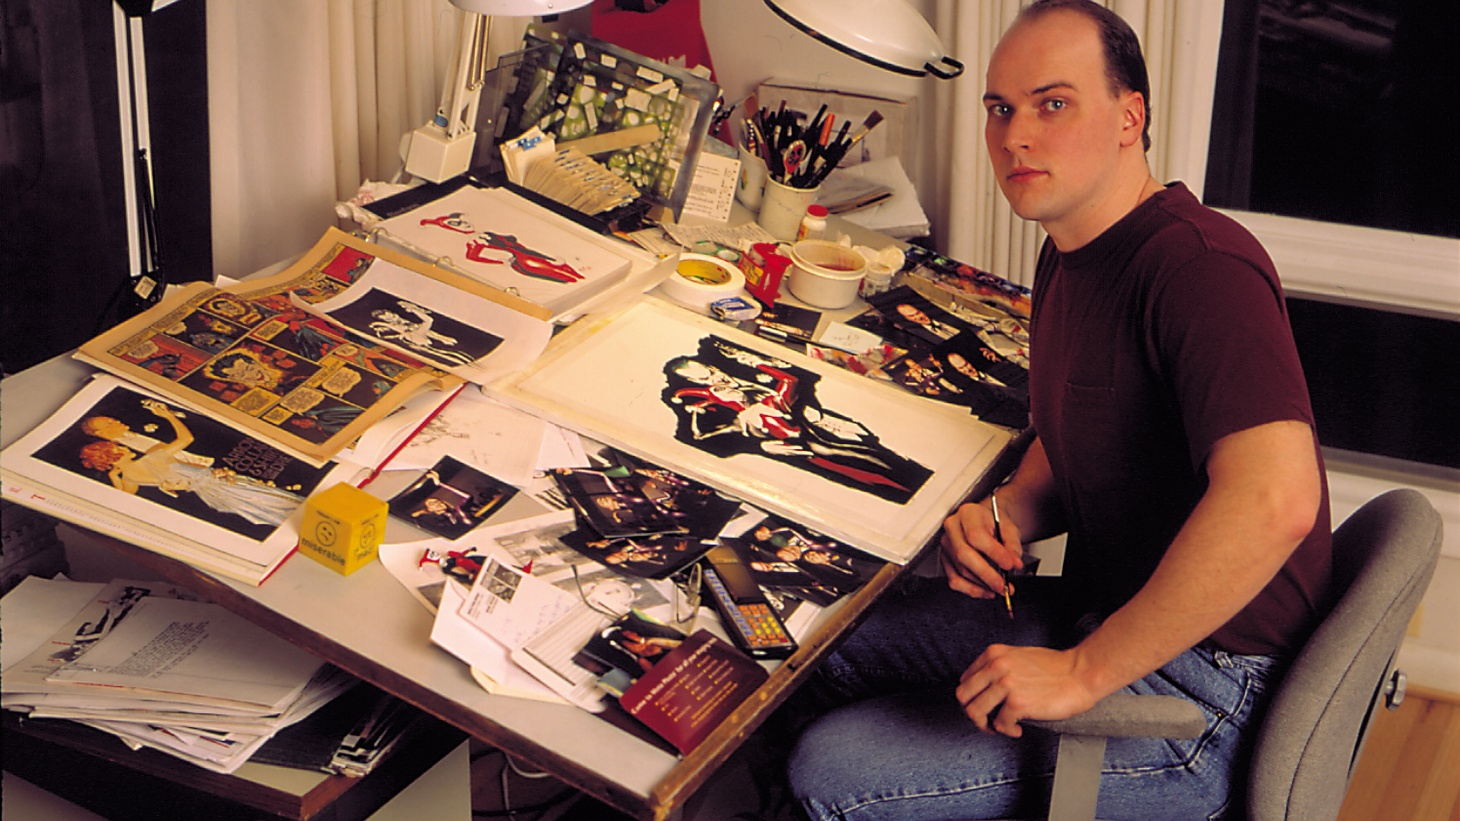 Comic book artist Alex Ross recently took on the Beatles, transforming some of their famous imagery into his painted, photorealist style. The Fab Four made his Guest DJ set song list, as did David Bowie, Queen and The Monkees. Alex also tells us the role of music in his creative process.